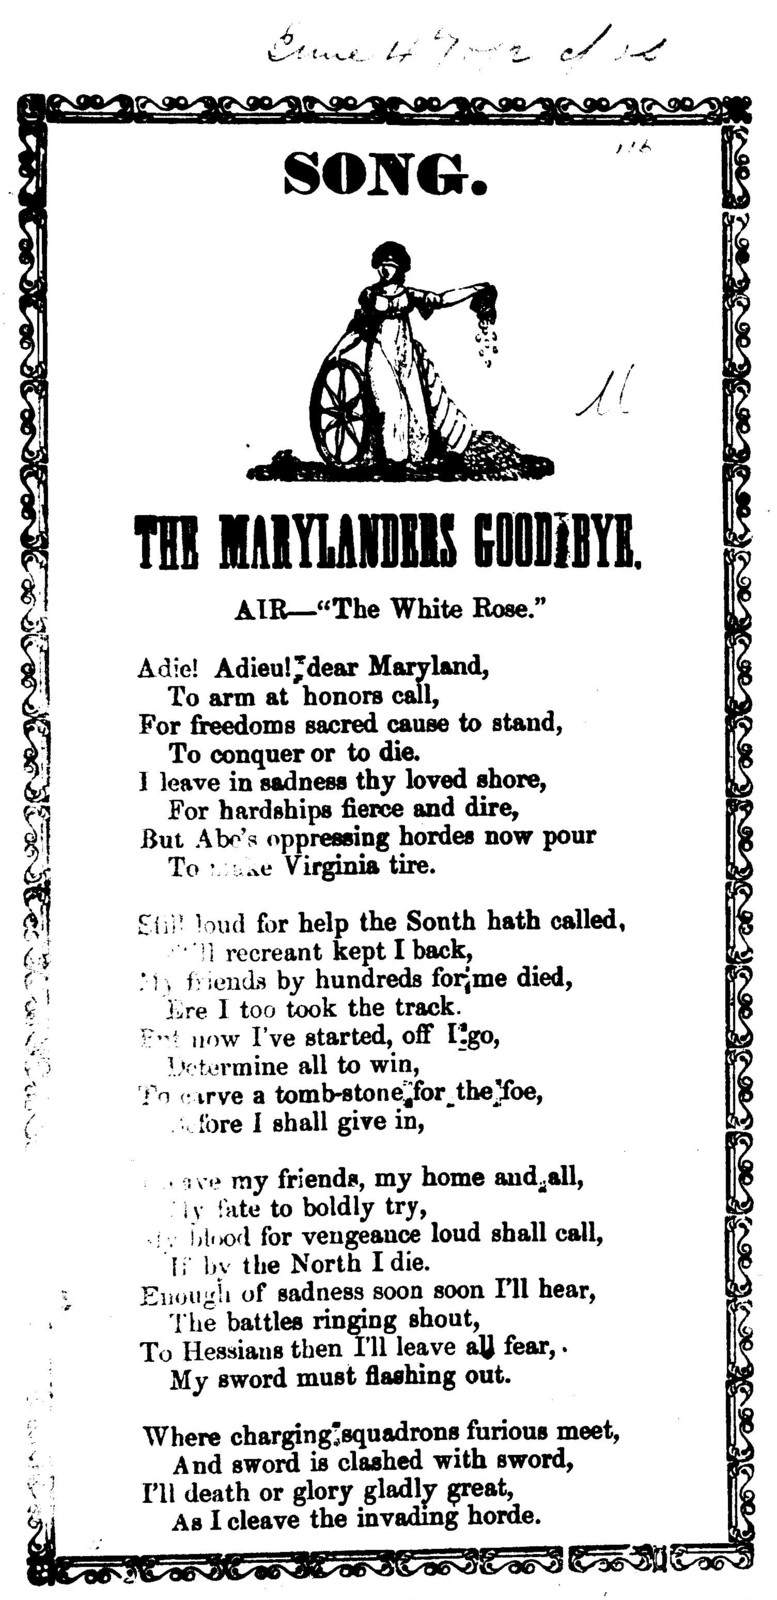 """Song. The Marylanders goodbye. Air-""""The White rose."""""""